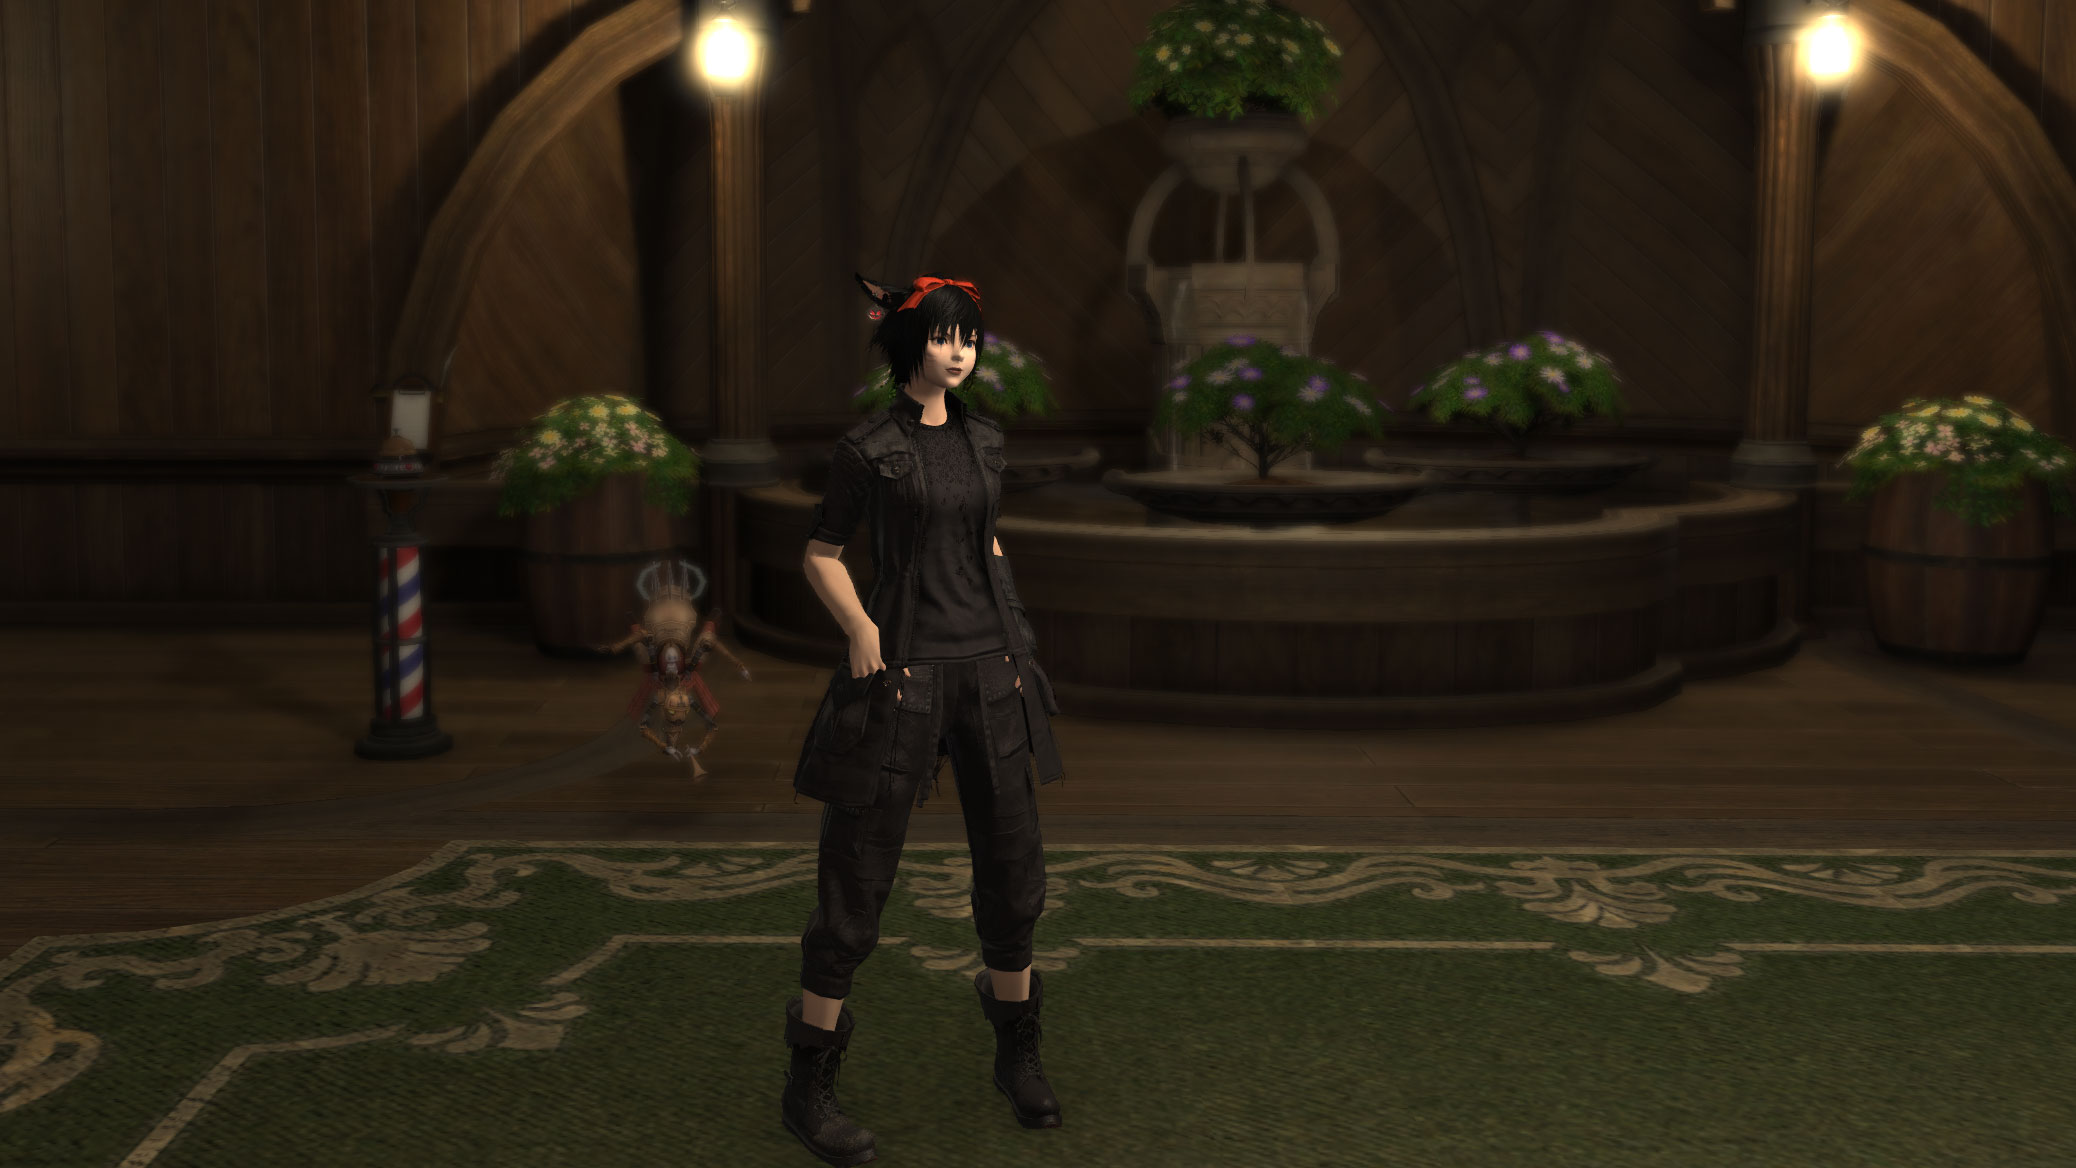 Final Fantasy XIV Jackie's warrior of light wearing Noctis' outfit and hairstyle